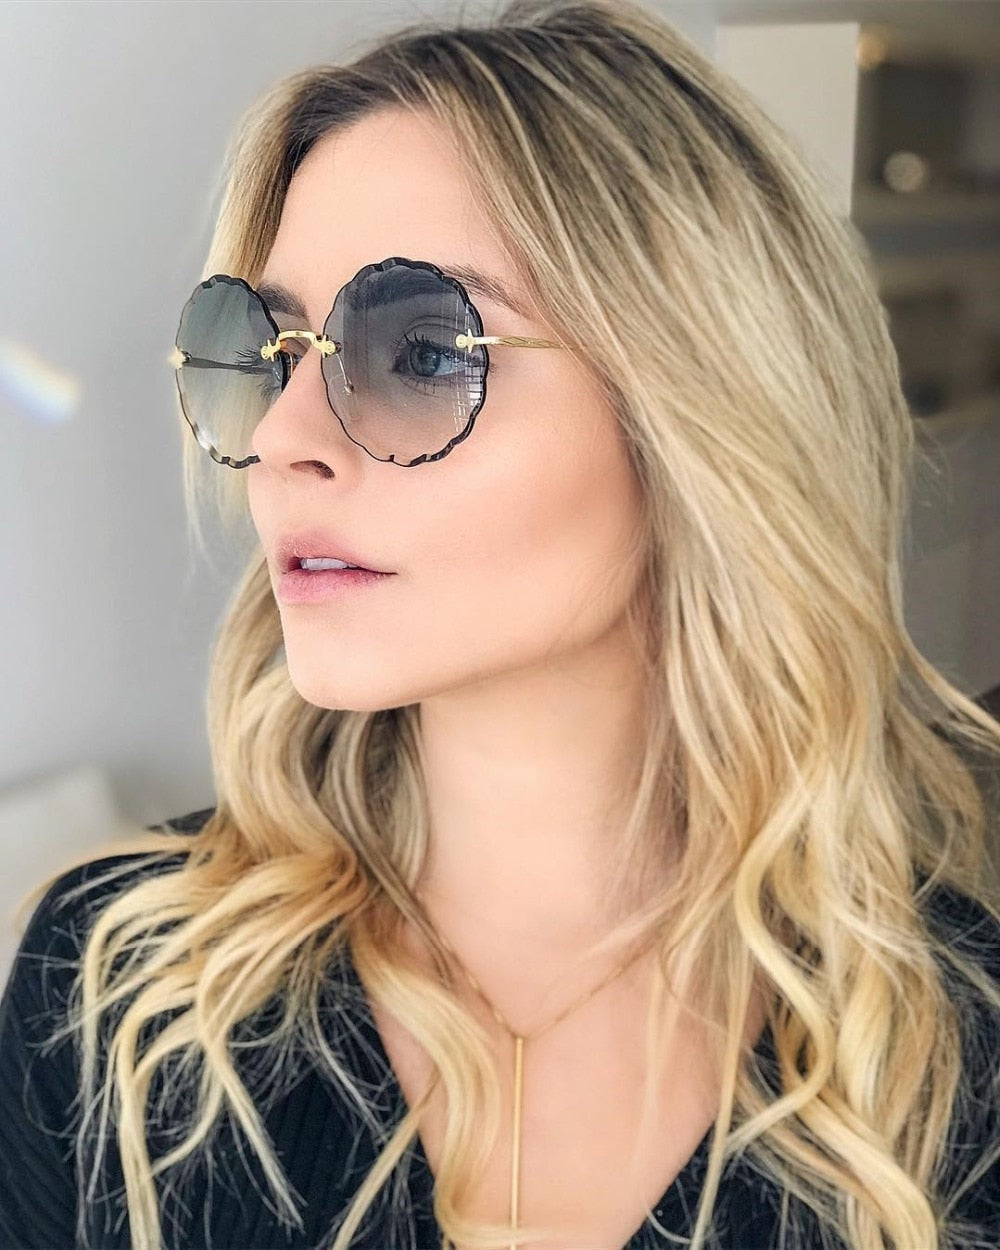 COURTNEY SUNGLASSES